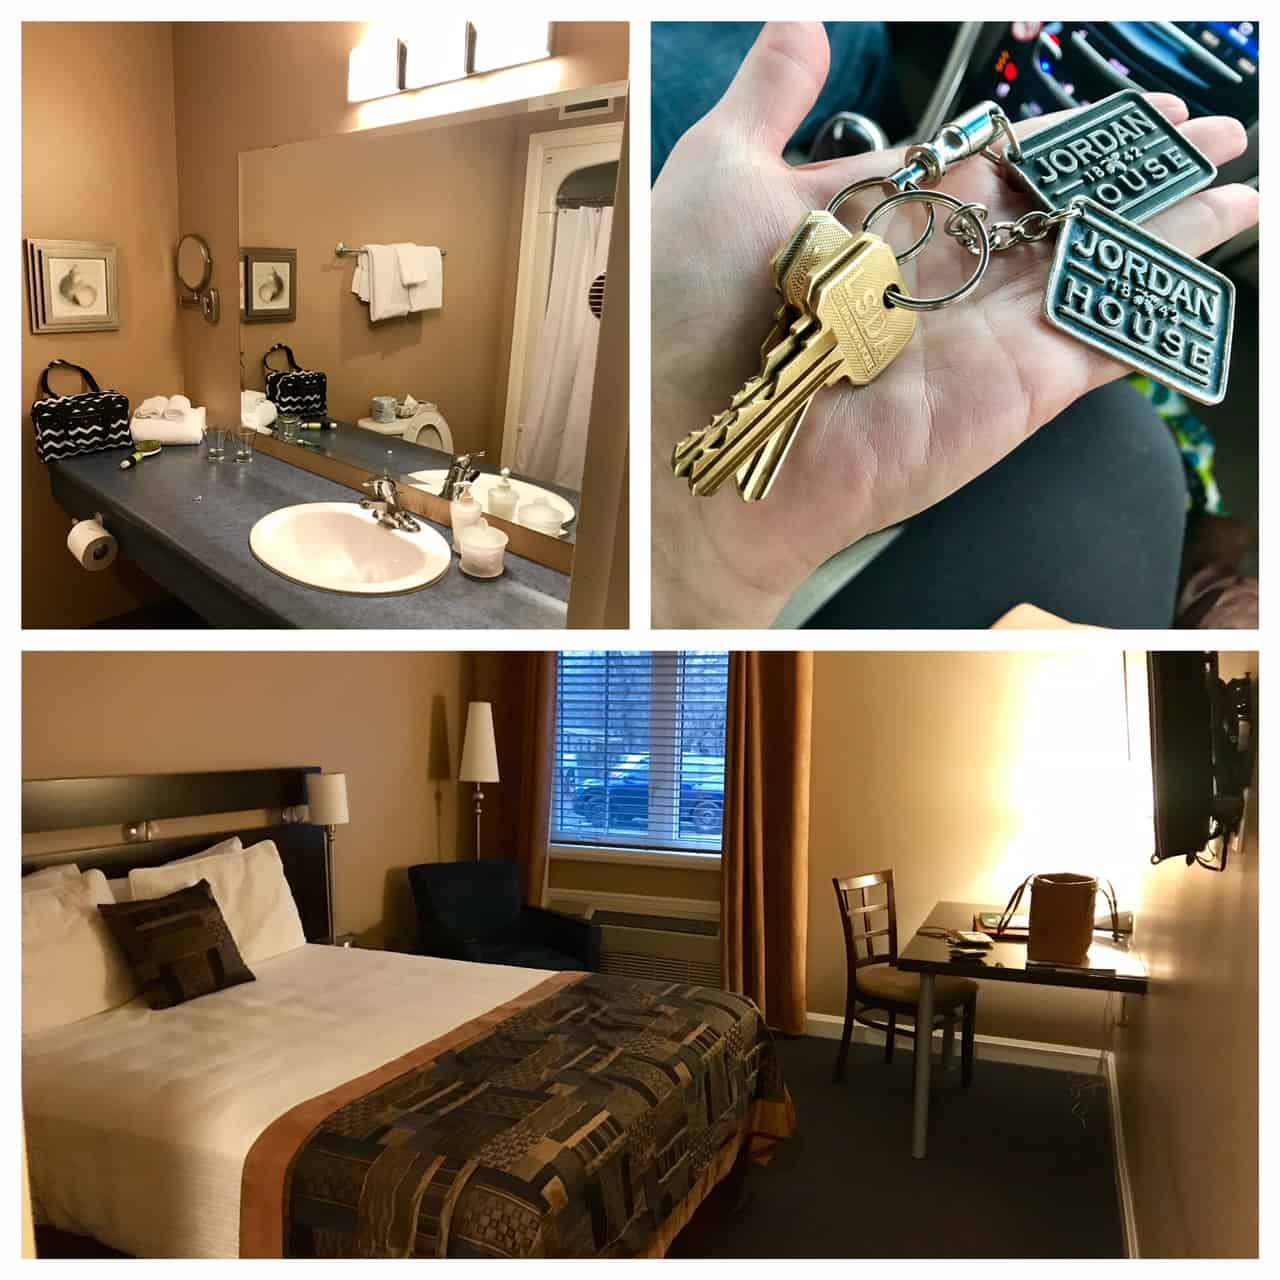 Collage of images from Jordan House Hotel